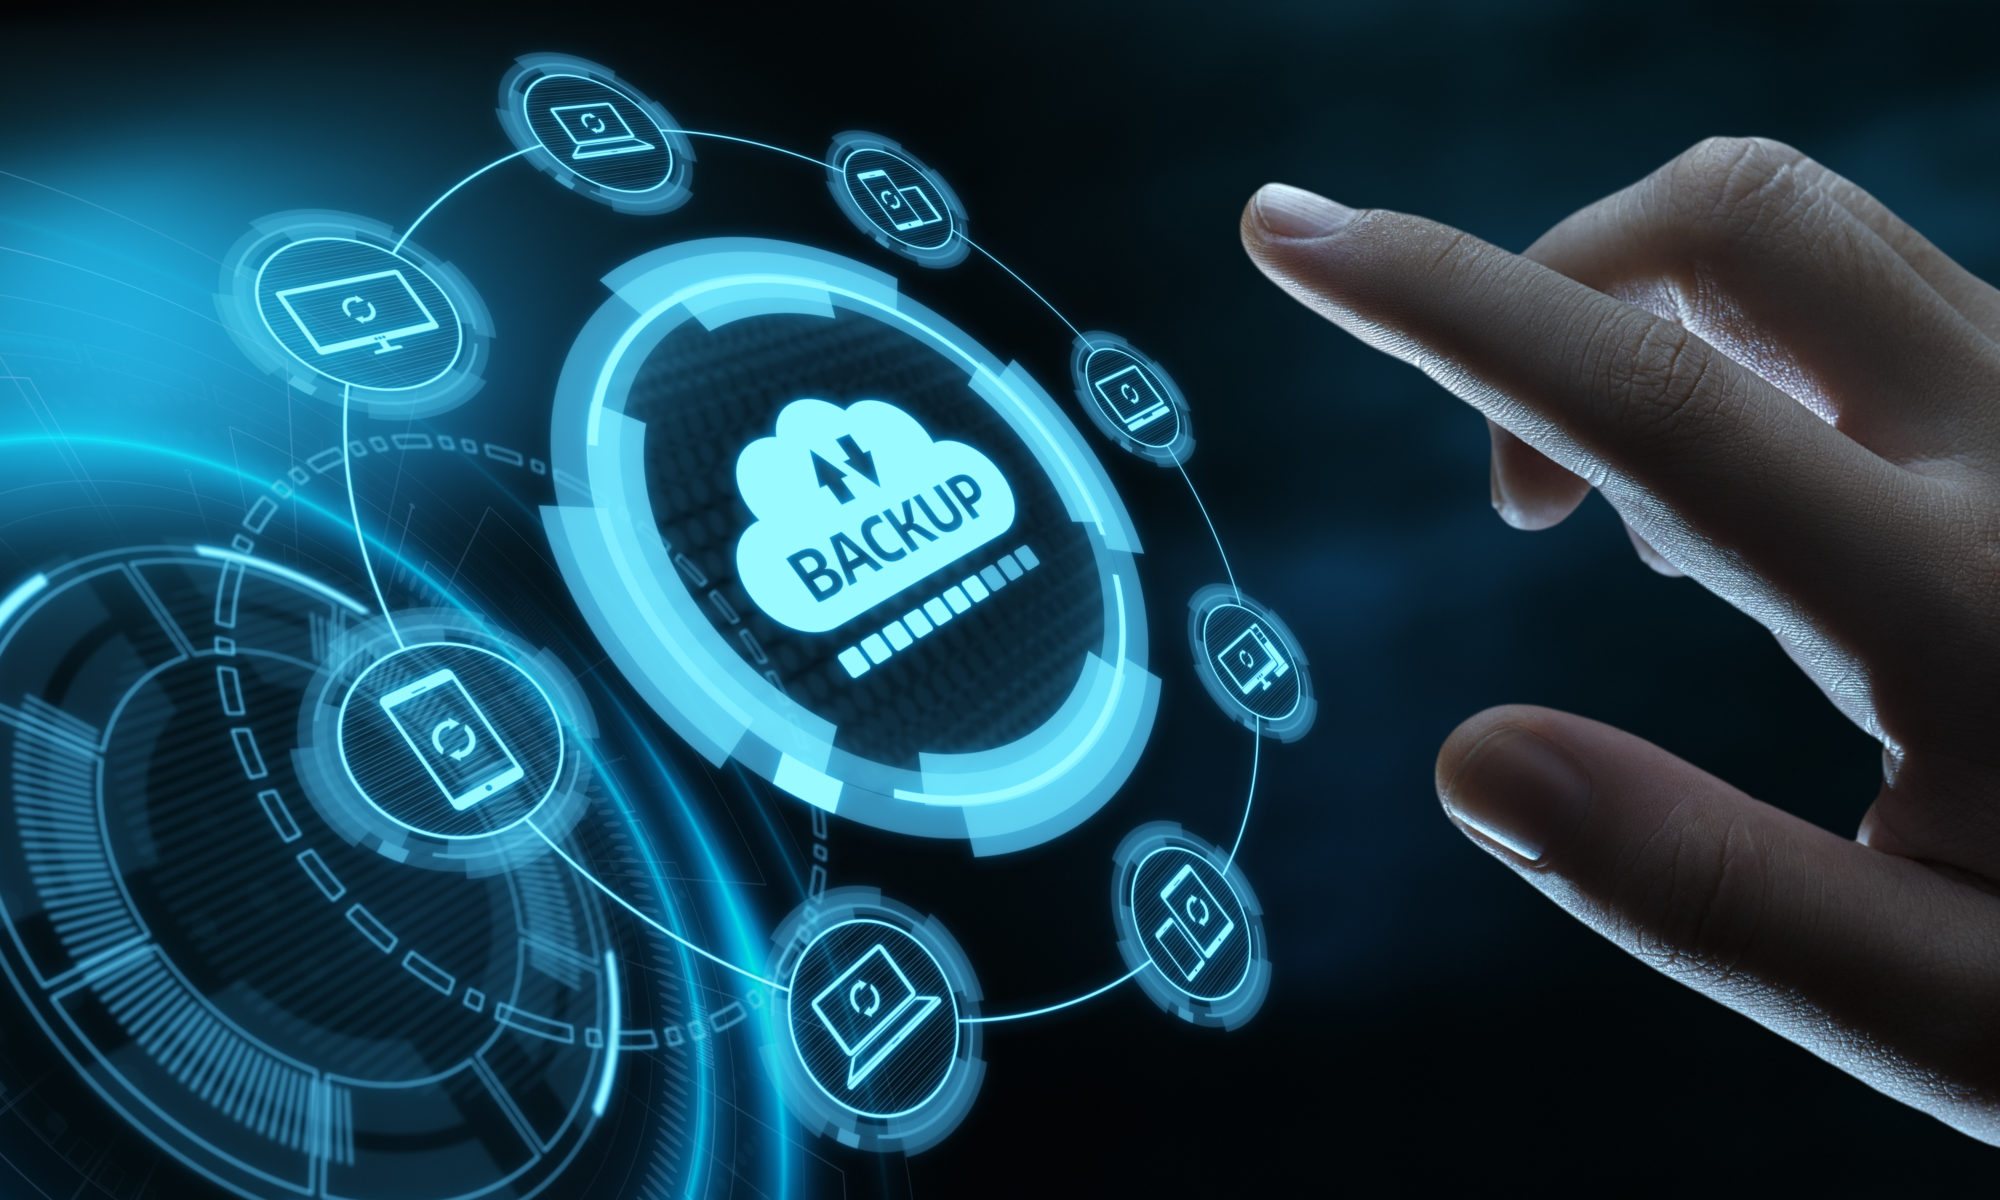 Backup as a service (BaaS): A must have for small businesses